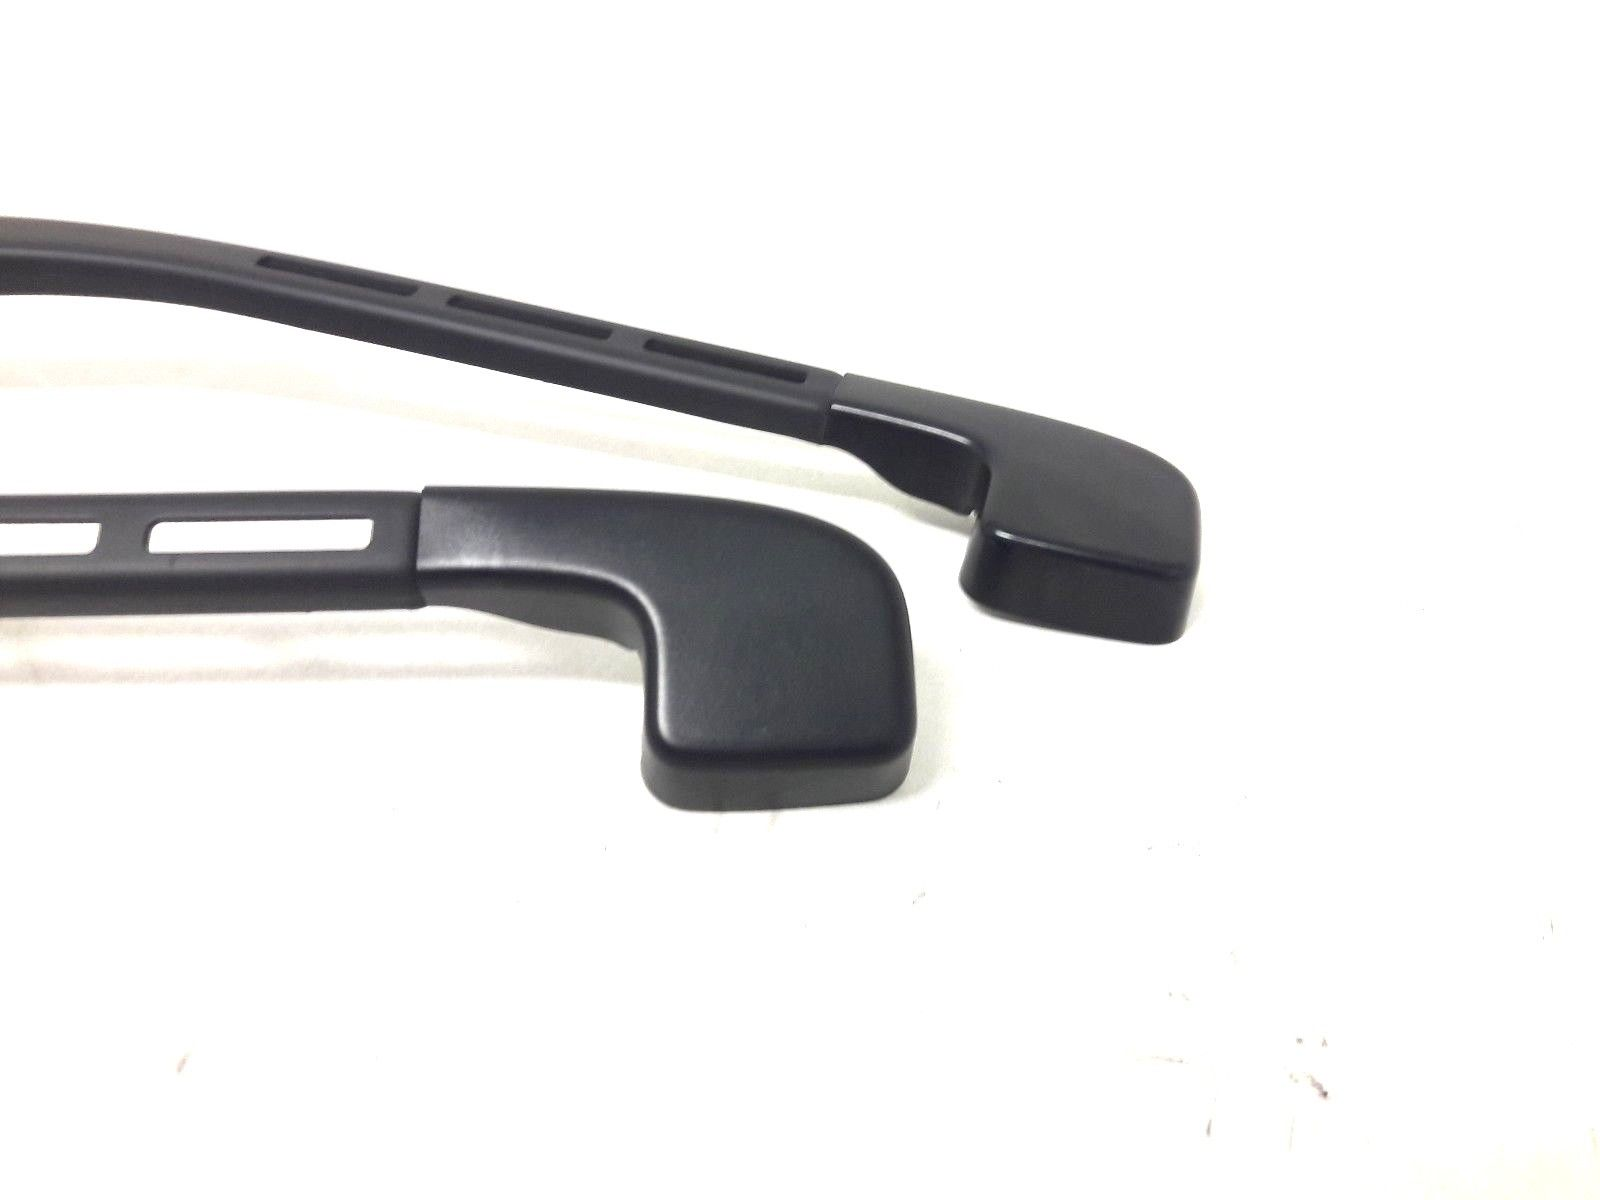 2007 - 2009 BMW 328i Windshield Wiper Arm Set Left And Right Side OEM 61-61-7-171-639